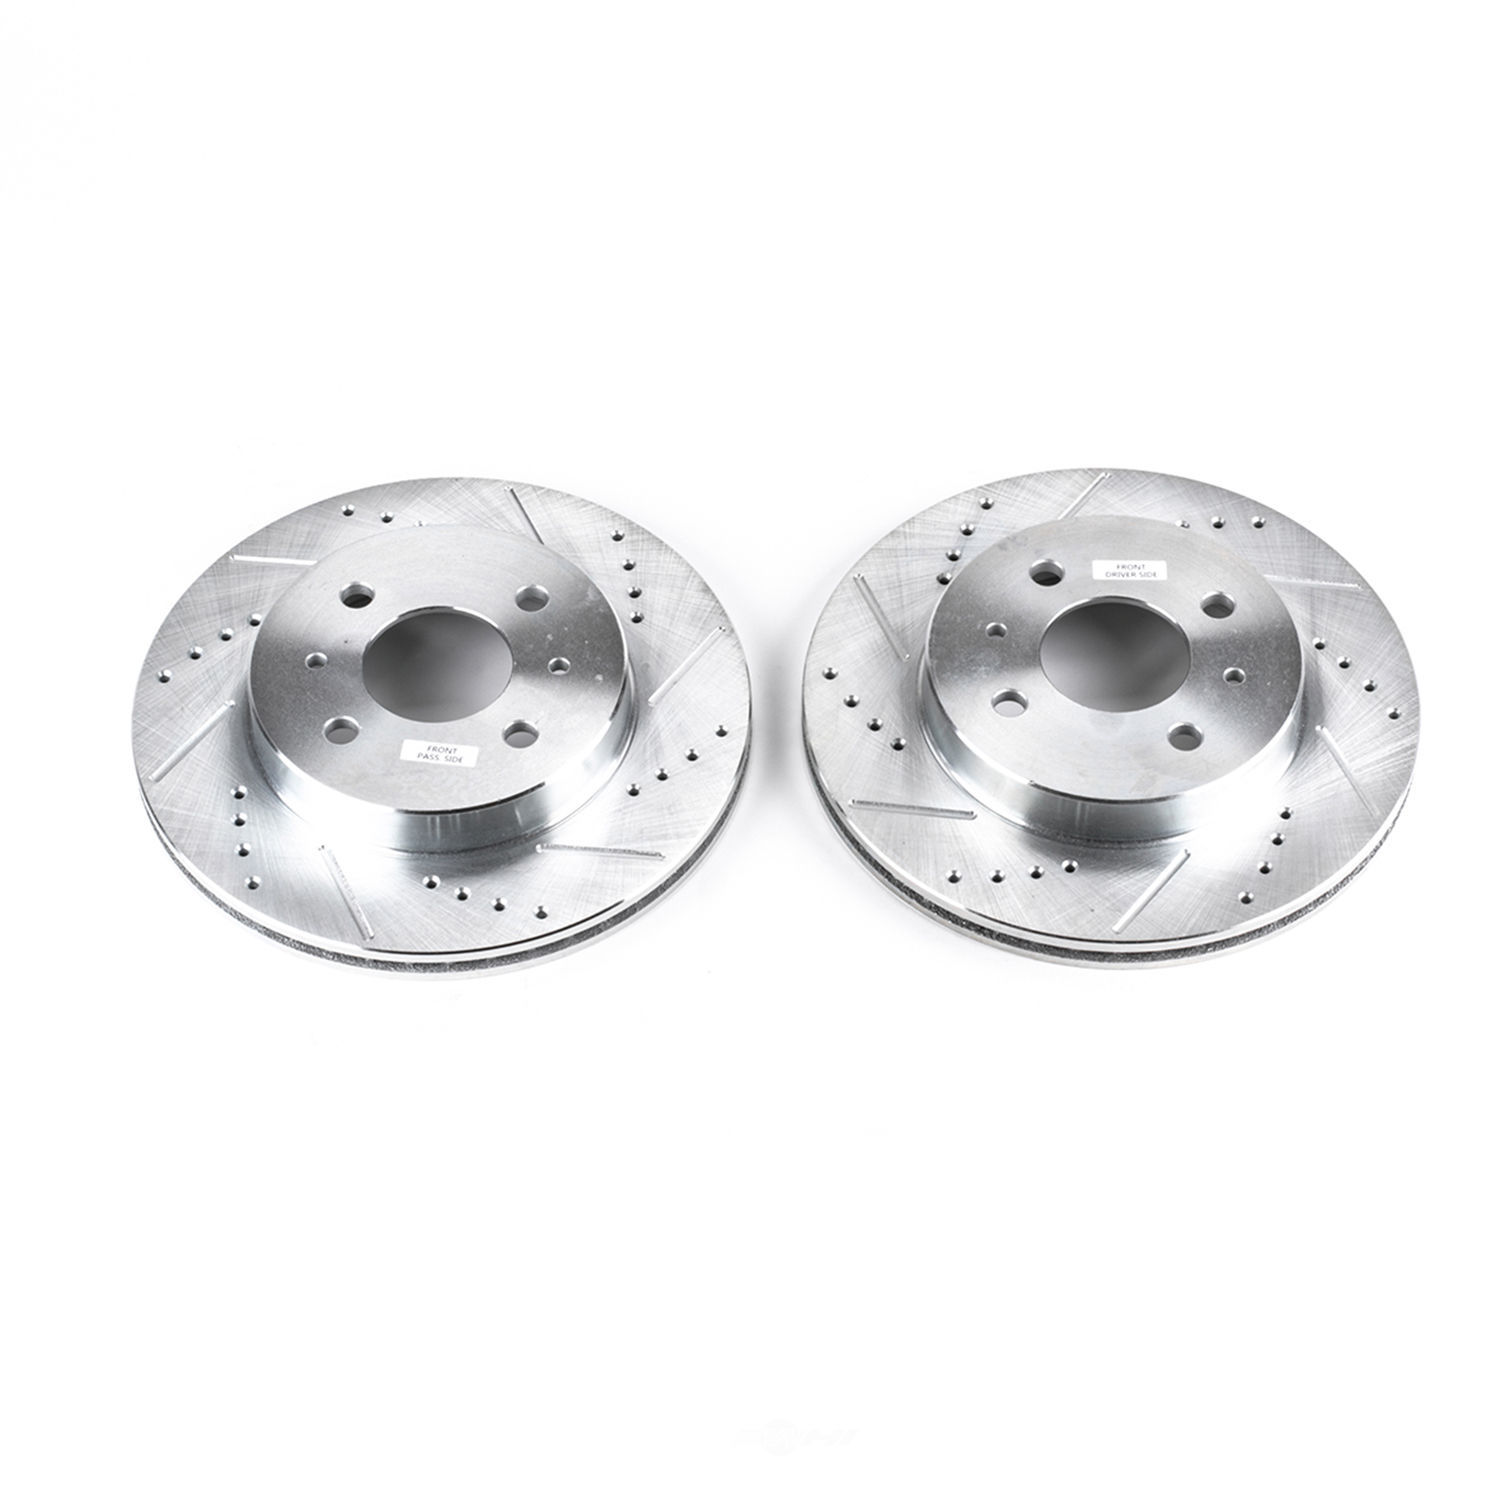 POWER STOP - Extreme Performance Drilled & Slotted Brake Rotor (Front) - PWS AR8238XPR